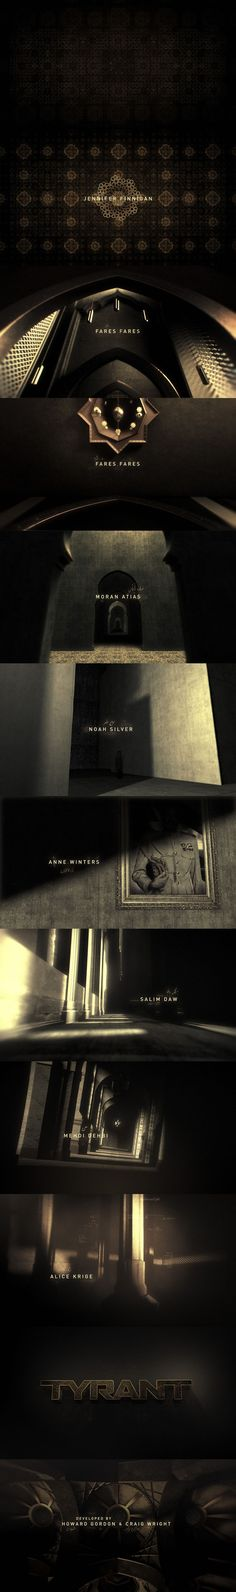 Creative title sequence design TYRANT main titles by Prodigal Pictures Graphic Design Typography, Branding Design, Art Of The Title, Web Design, Design Trends, Title Card, Title Sequence, Photoshop Design, Motion Design